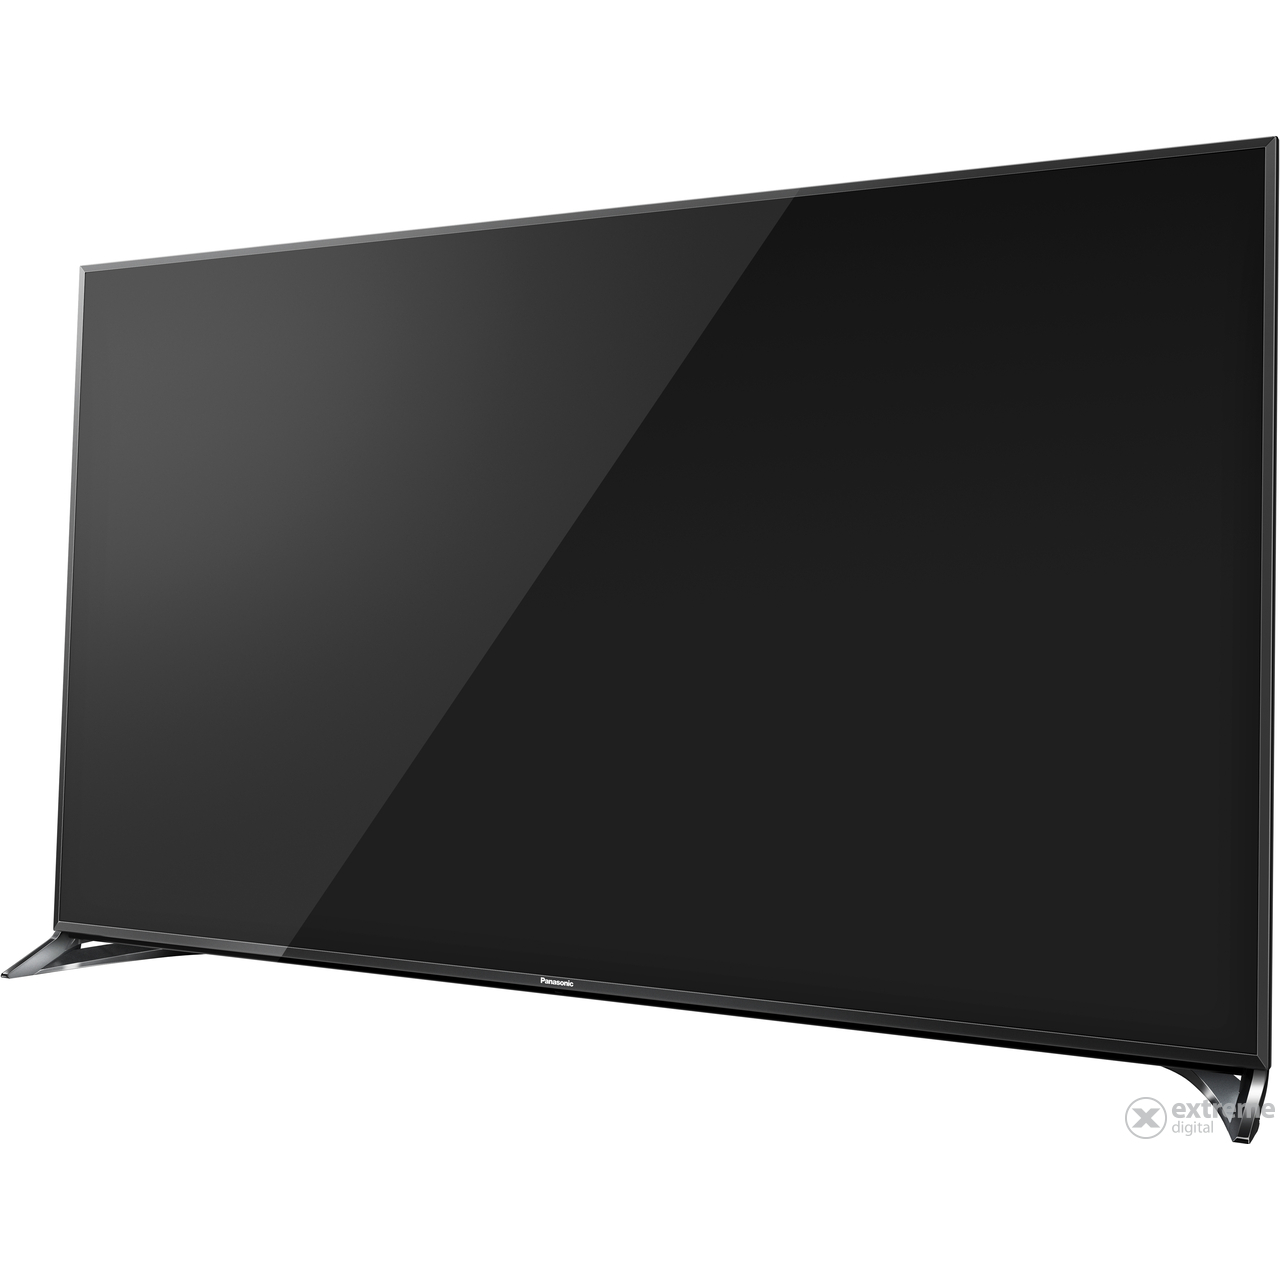 panasonic-tx-40cx800e-uhd-3d-smart-led-televizio_e35885a5.jpg